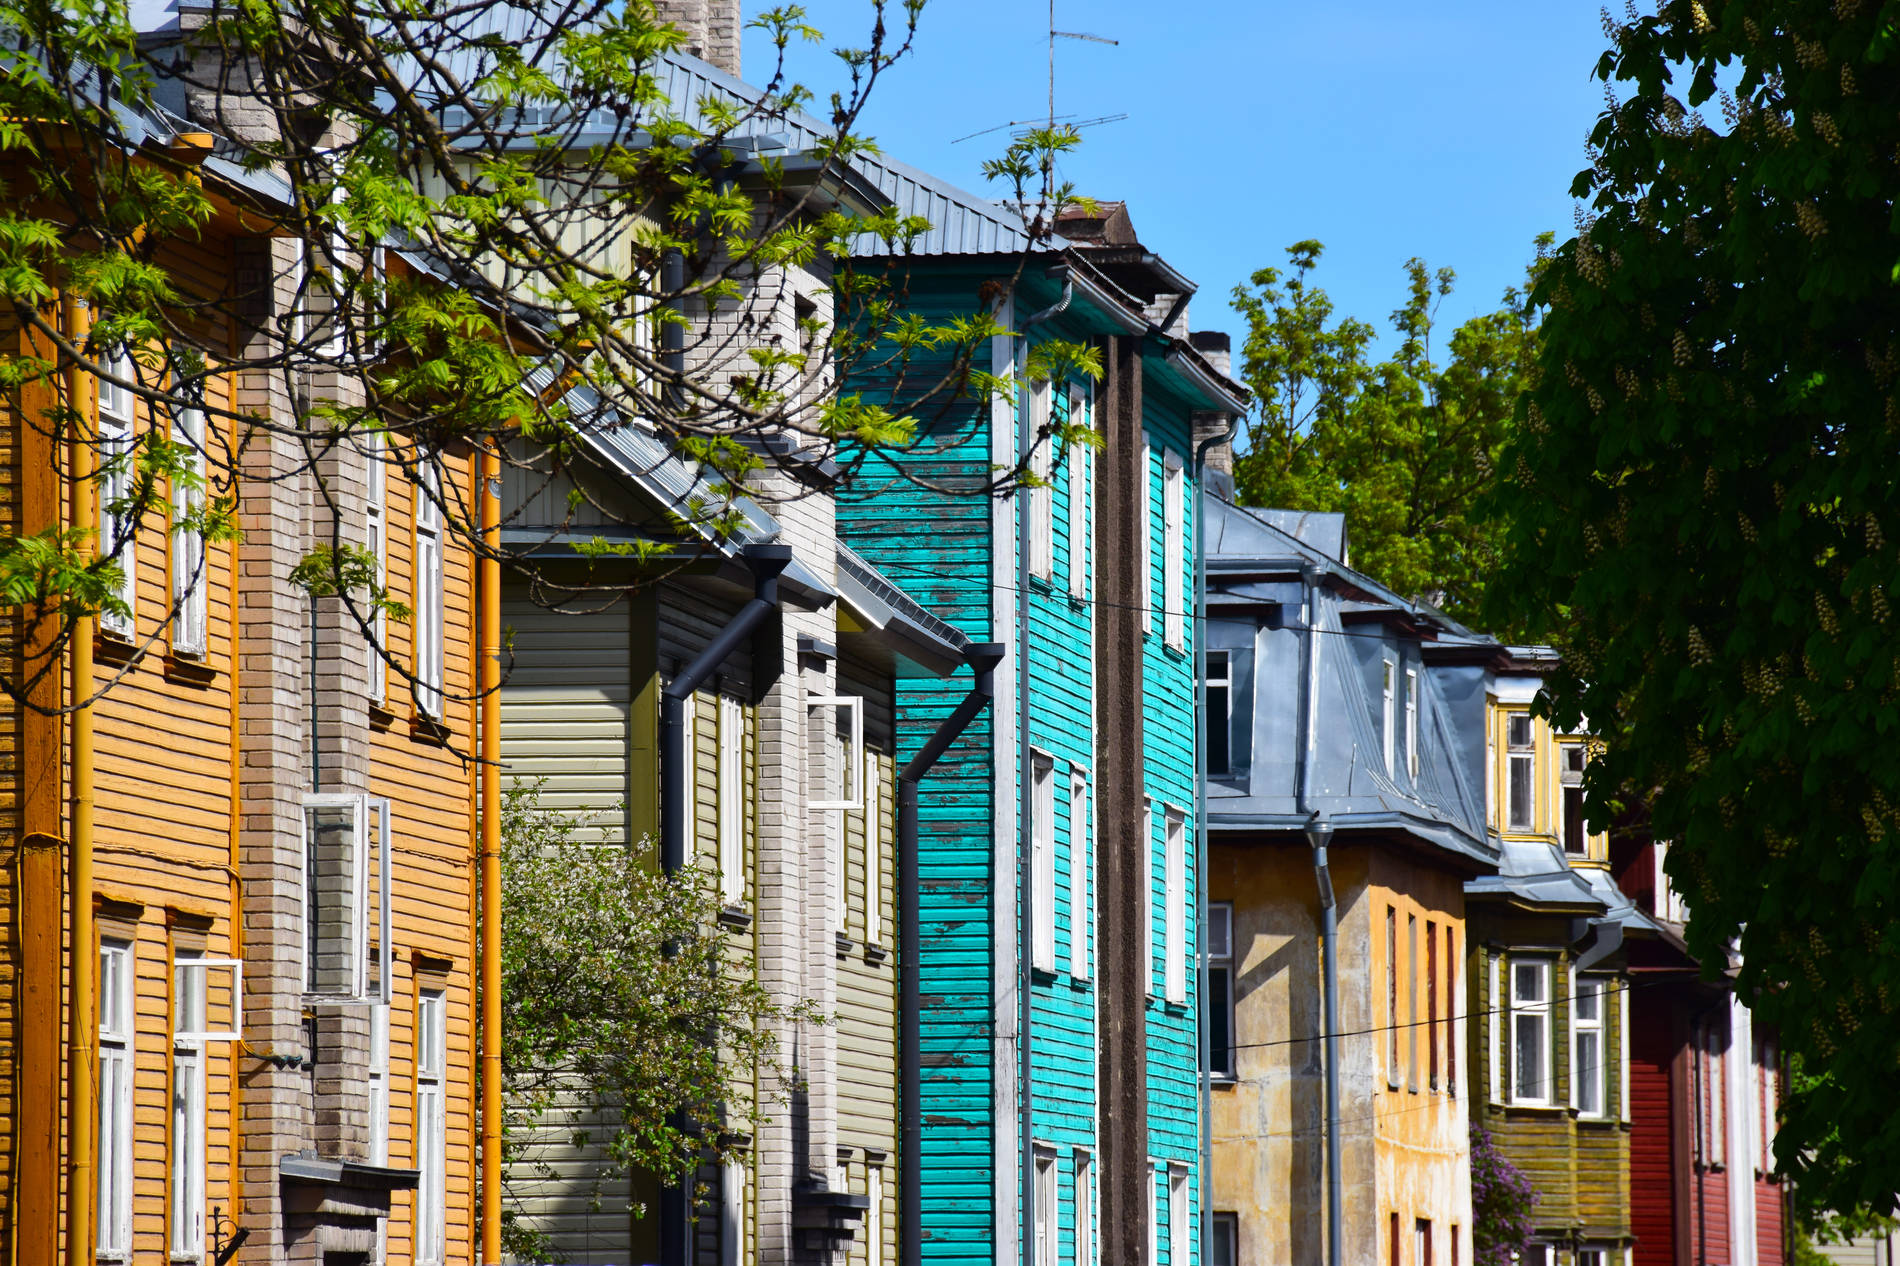 View of the colourful wooden houses from the Kalamaja region in Tallinn, Estonia. Photo by: Maret Põldveer-Turay